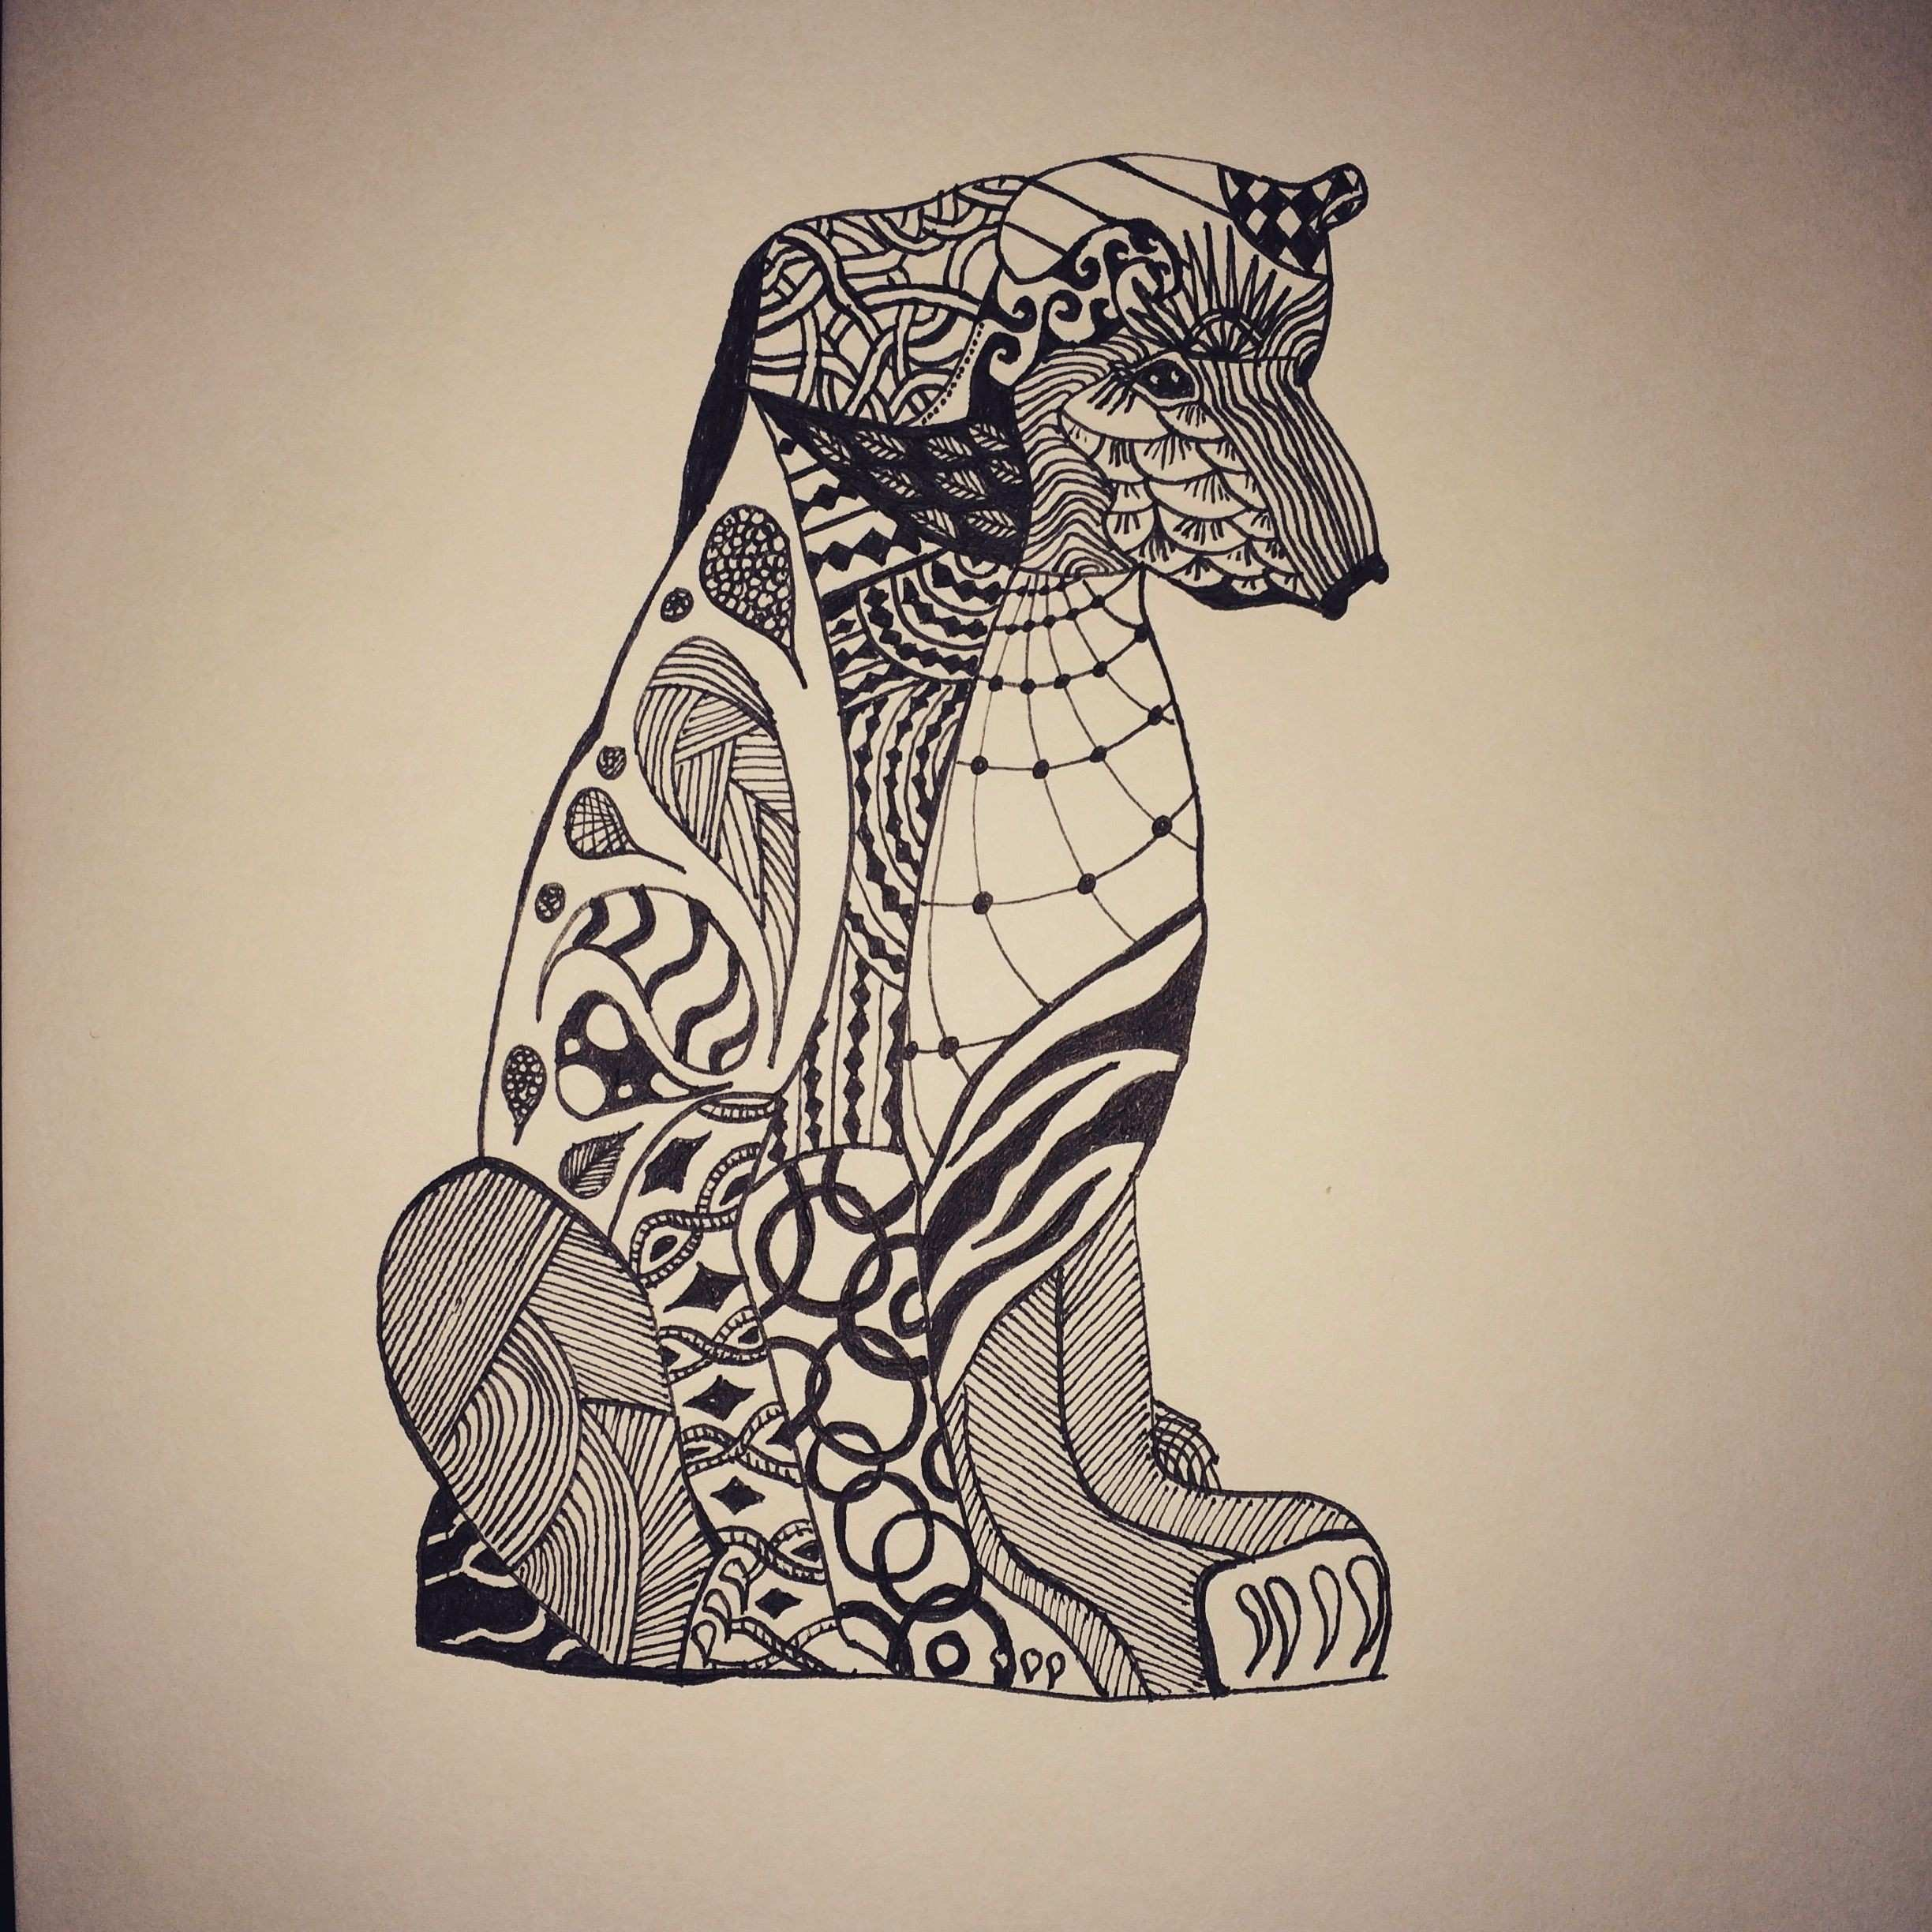 Fun geometric bear print Created with fine tip black pen For more